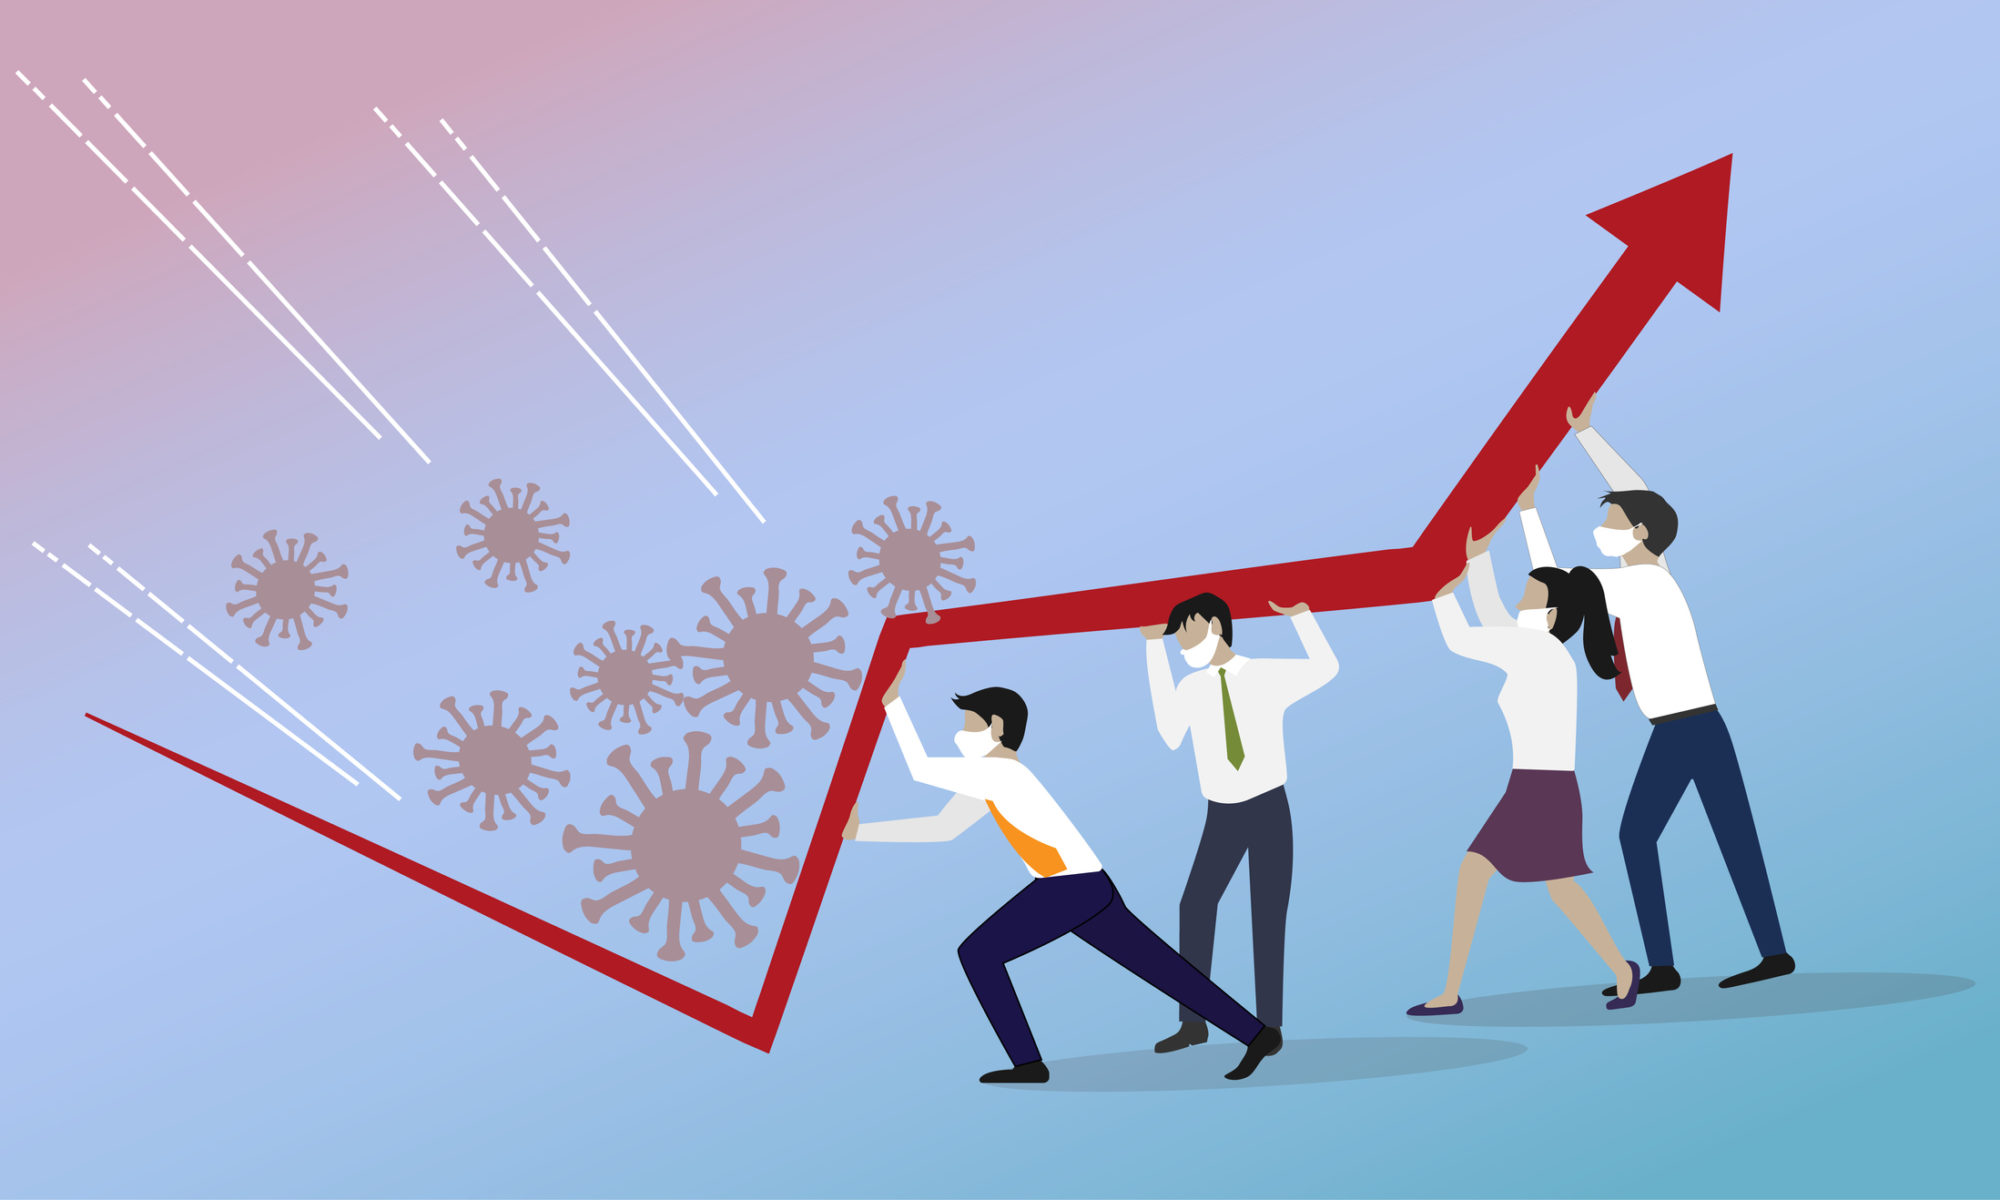 Vector conceptual drawing of 4 business people struggling with growth in the pandemic